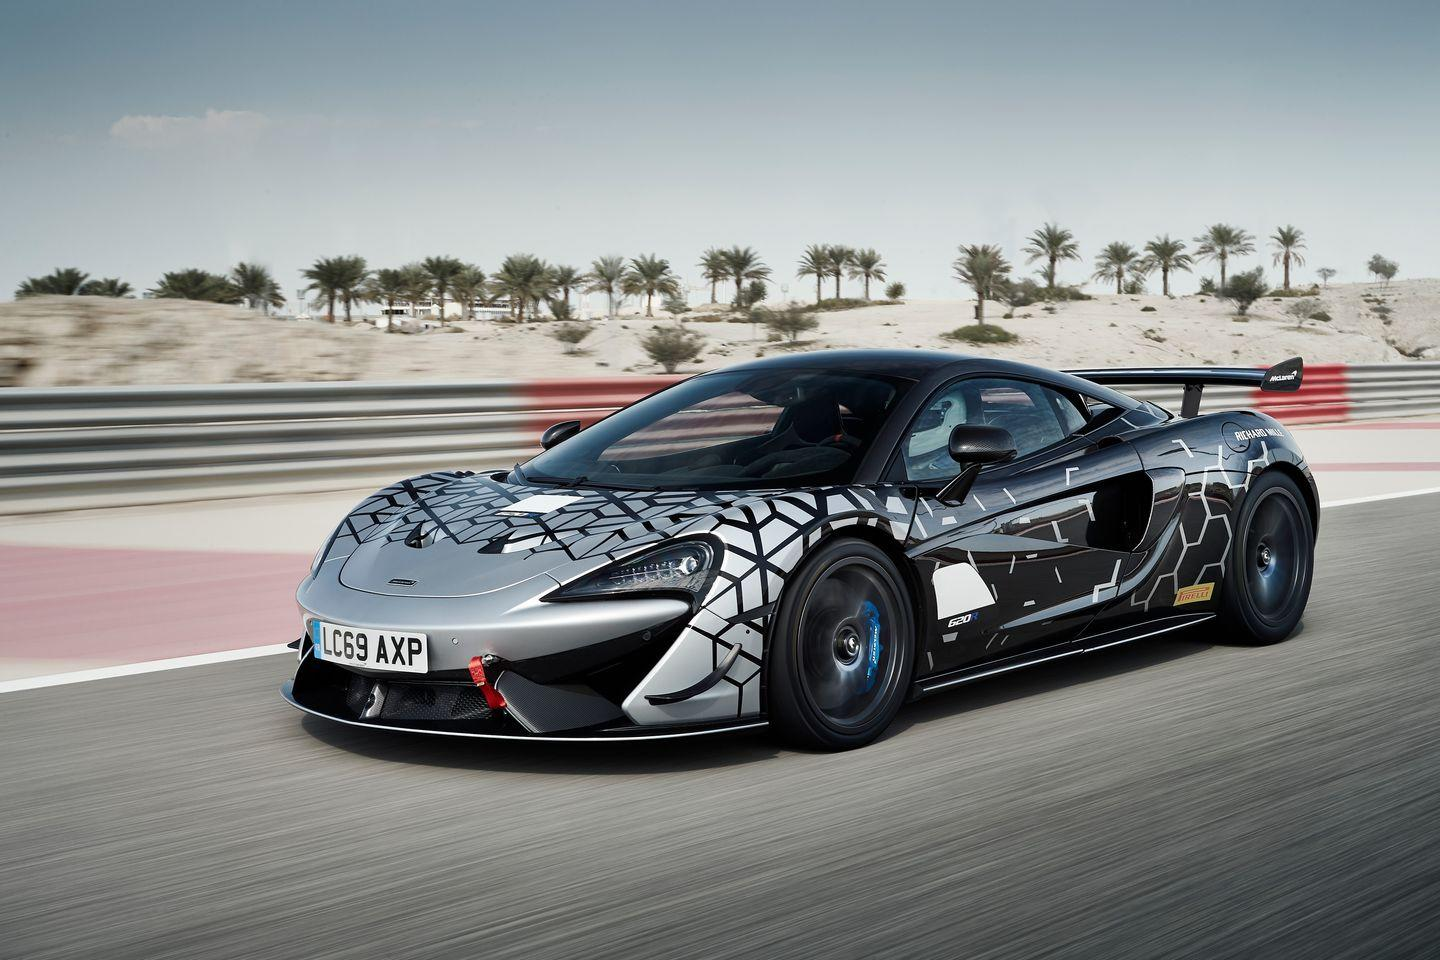 """<p>You could argue the normal 570S would be more fun with a manual transmission. But not the track-ready <a href=""""https://www.roadandtrack.com/new-cars/a30167746/2020-mclaren-620r-pictures-specs-hp-info/"""" rel=""""nofollow noopener"""" target=""""_blank"""" data-ylk=""""slk:620R"""" class=""""link rapid-noclick-resp"""">620R</a>. It takes cues directly from the company's GT4 car, and it's been designed for one purpose only: to lay down fast lap times. A manual would only make things slower. </p>"""